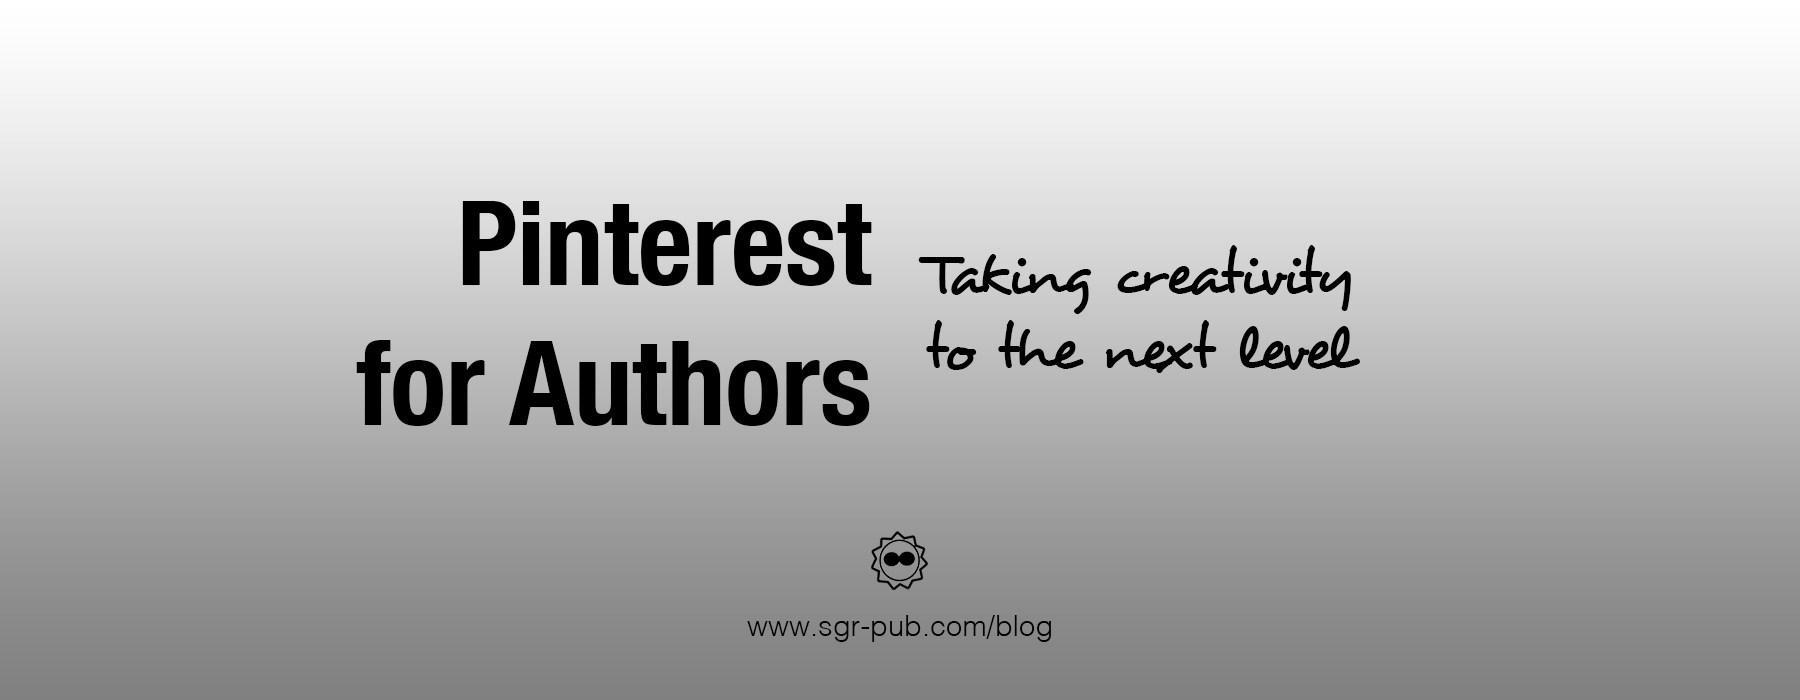 Pinterest for authors: Taking creativity to the next level